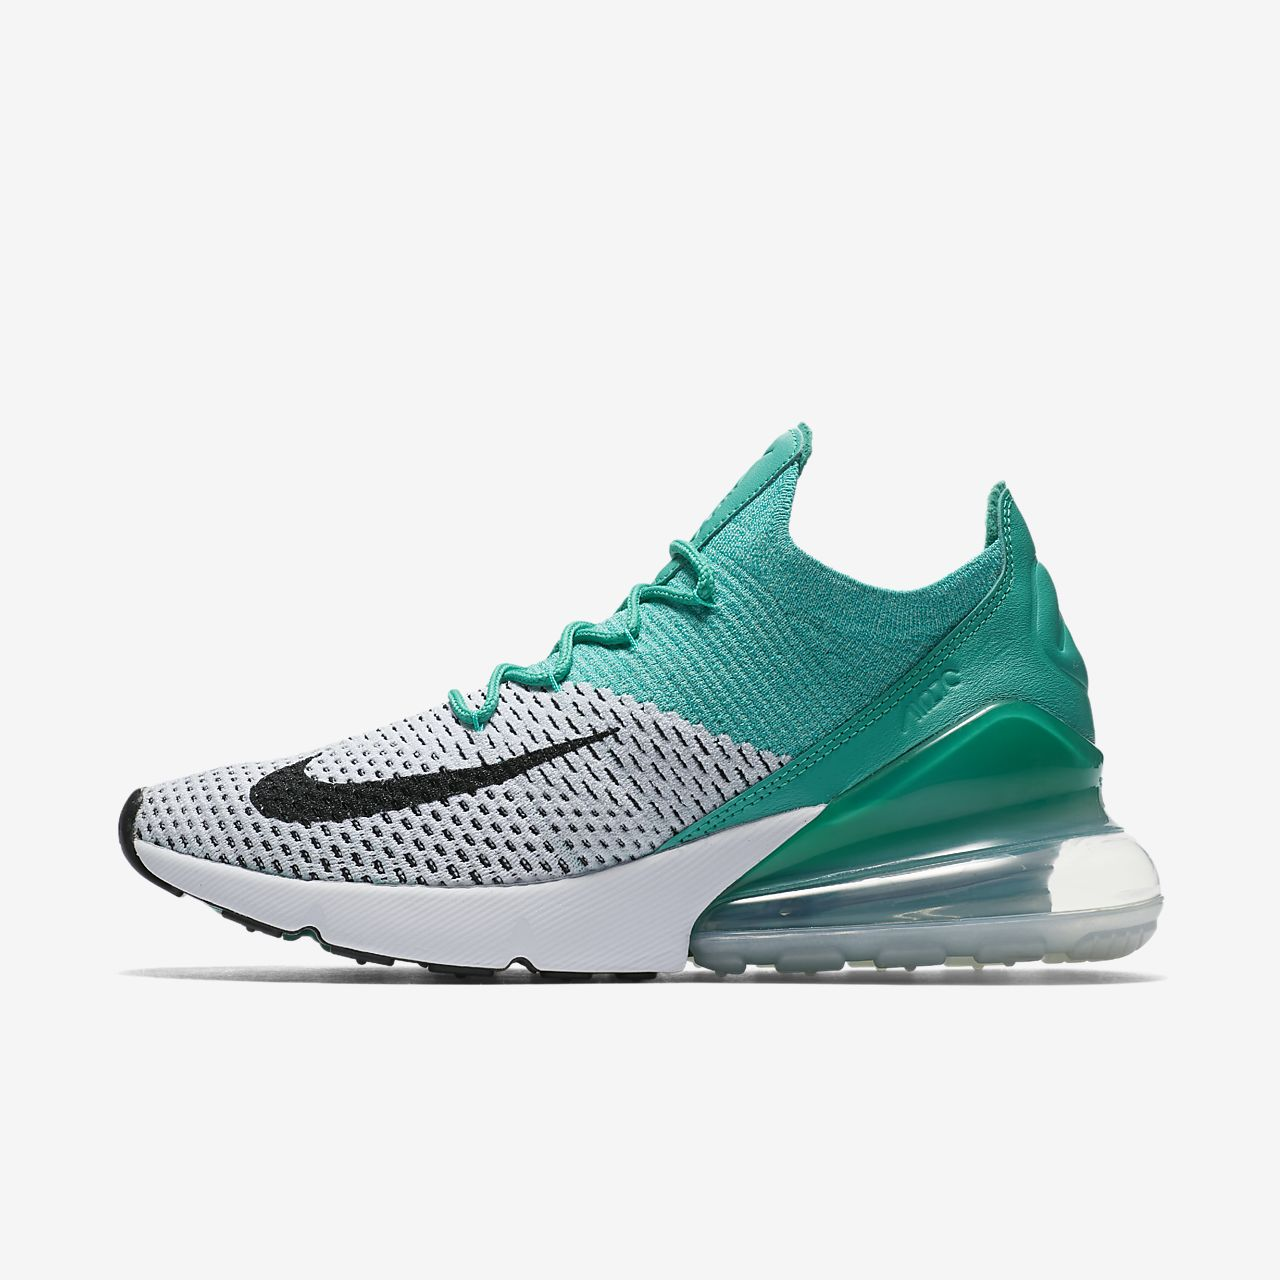 ... Nike Air Max 270 Flyknit Women's Shoe